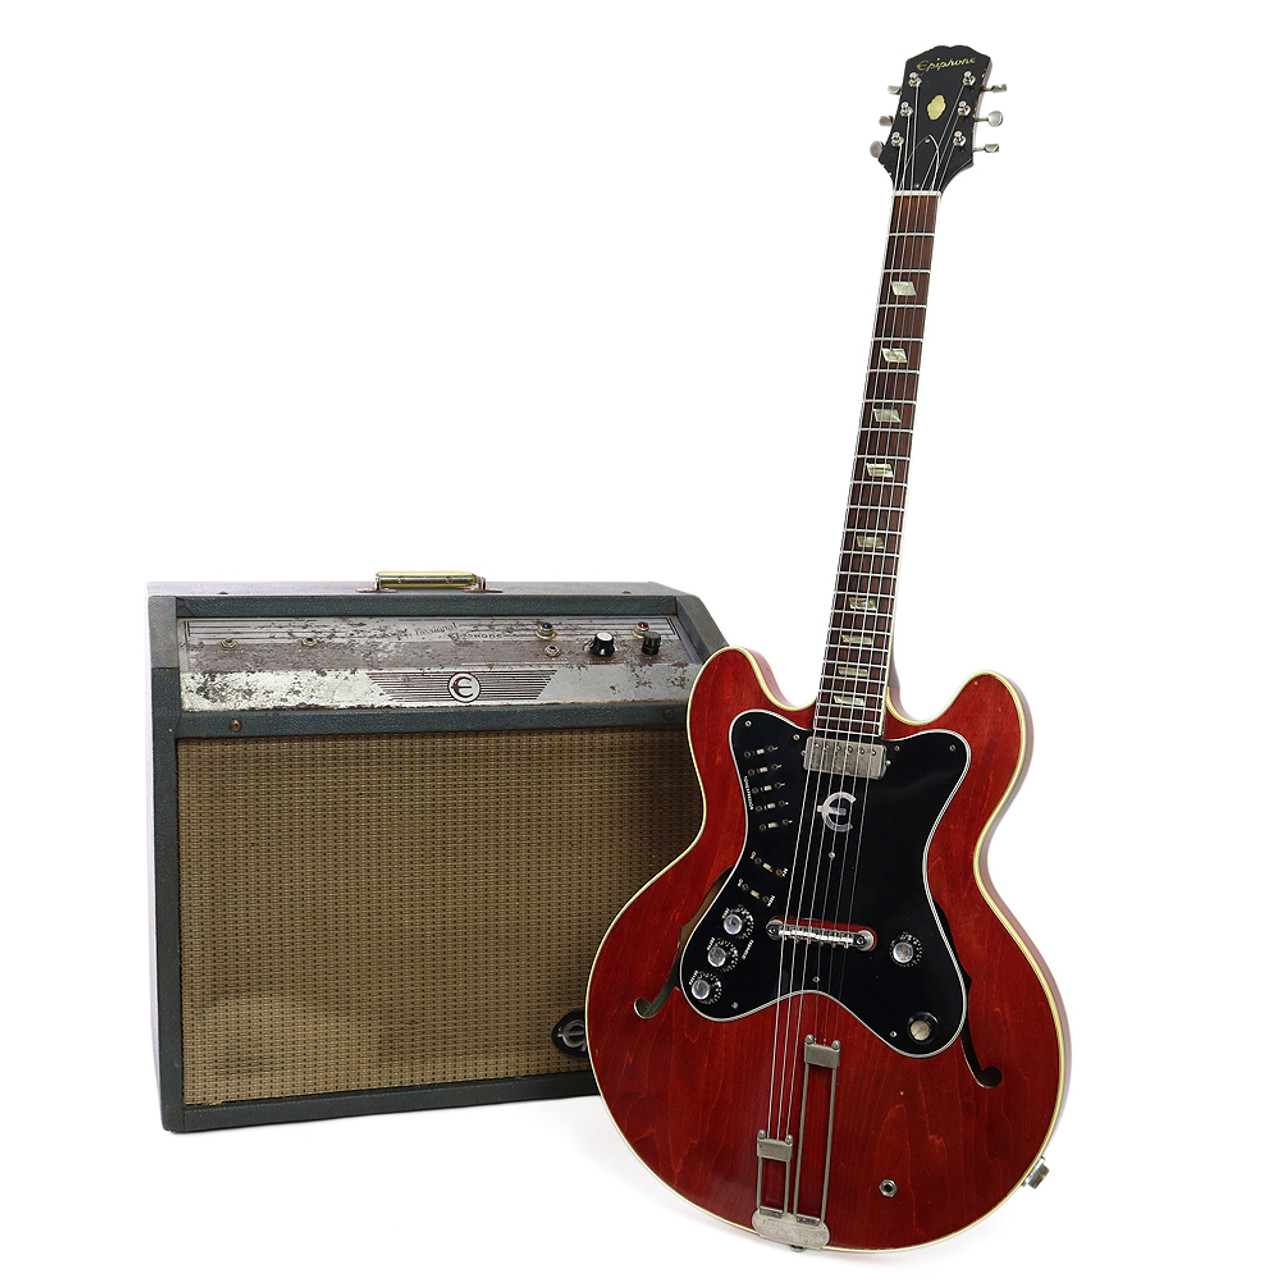 vintage 1964 epiphone ea 7p professional electric guitar with matching amp cream city music. Black Bedroom Furniture Sets. Home Design Ideas